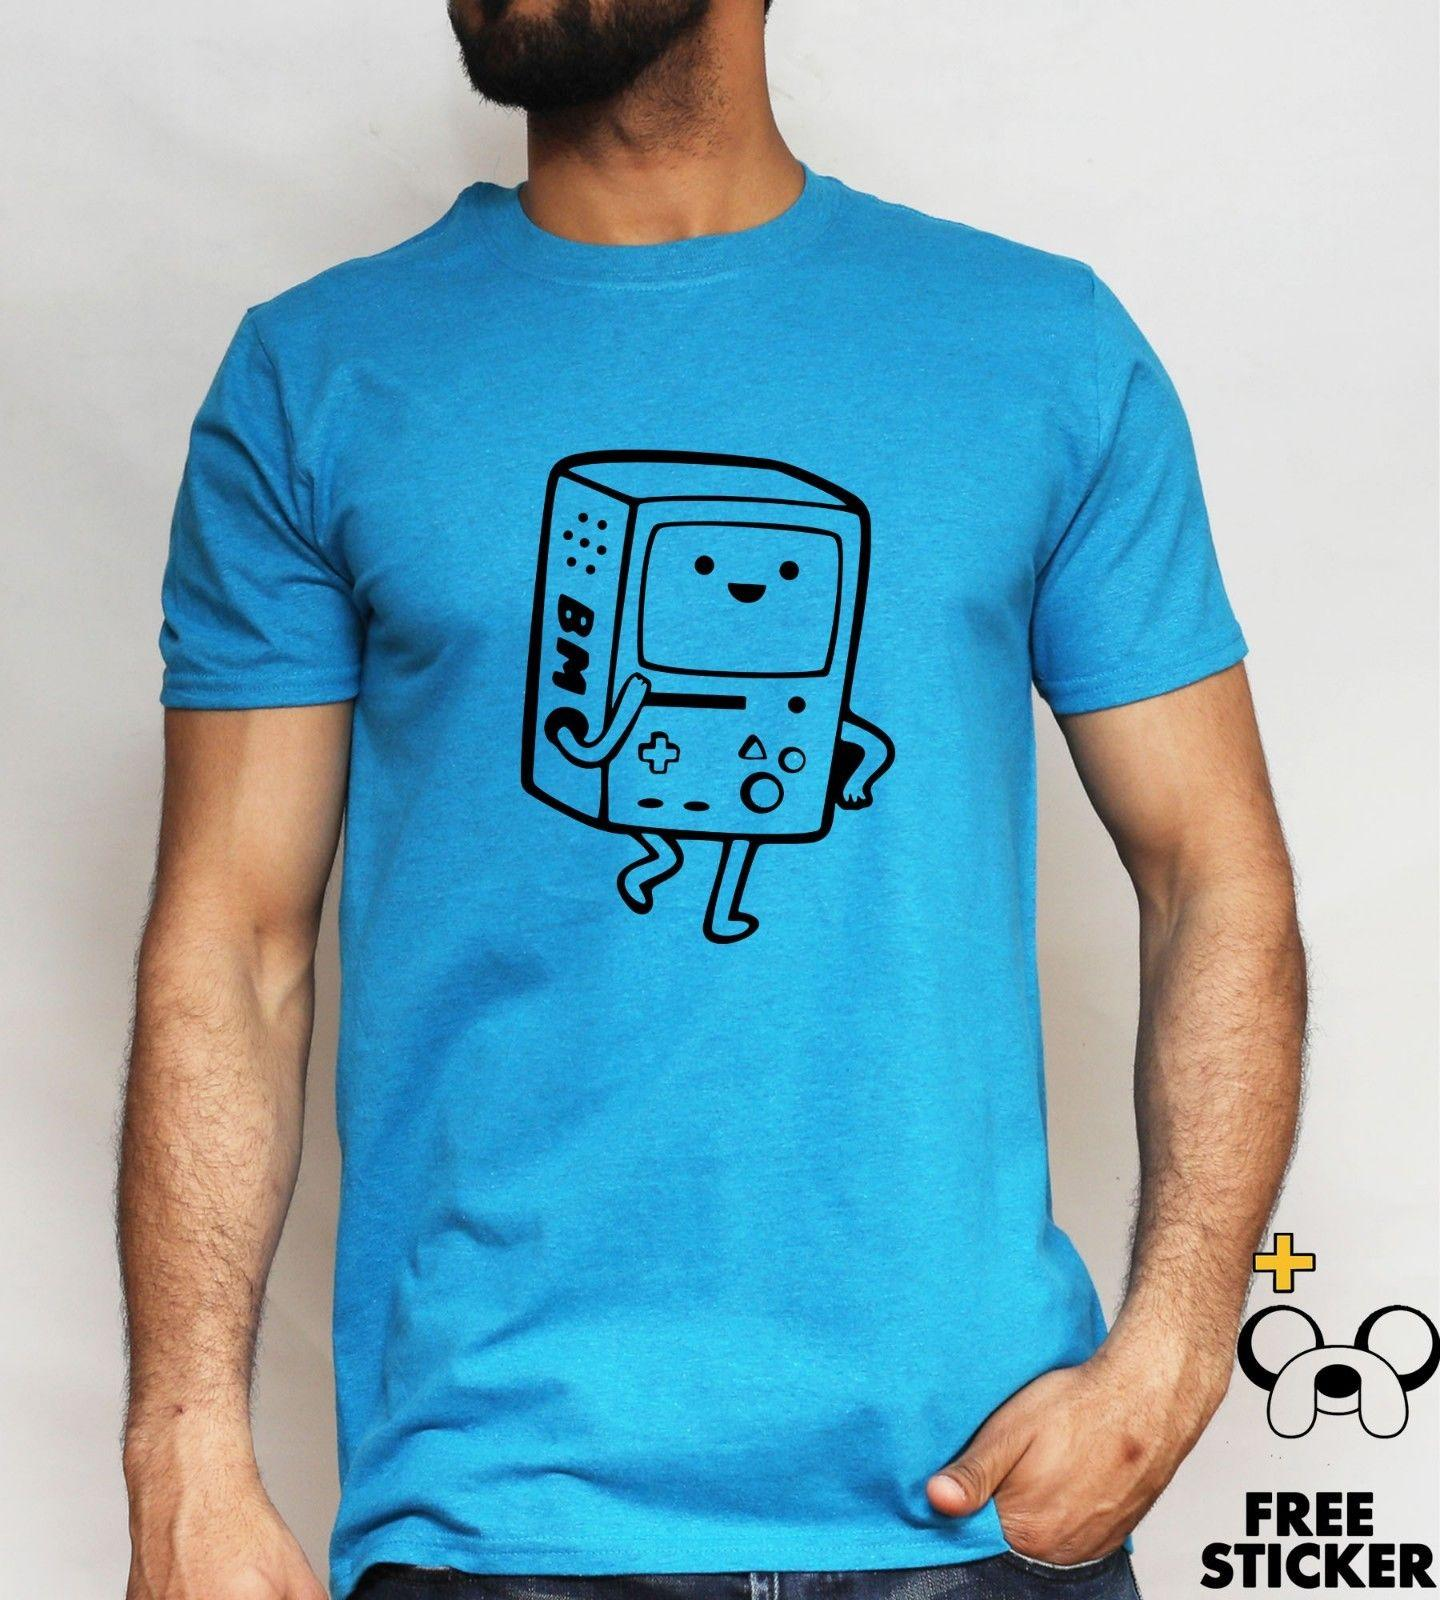 BMO Game T Shirt Finn And Jake Cool Gift Present Tee Top Mens Women S XL  Funny Unisex Casual Tee Gift Cool And Funny T Shirts Buy A T Shirt From  Fat dad 61f9c5a1c